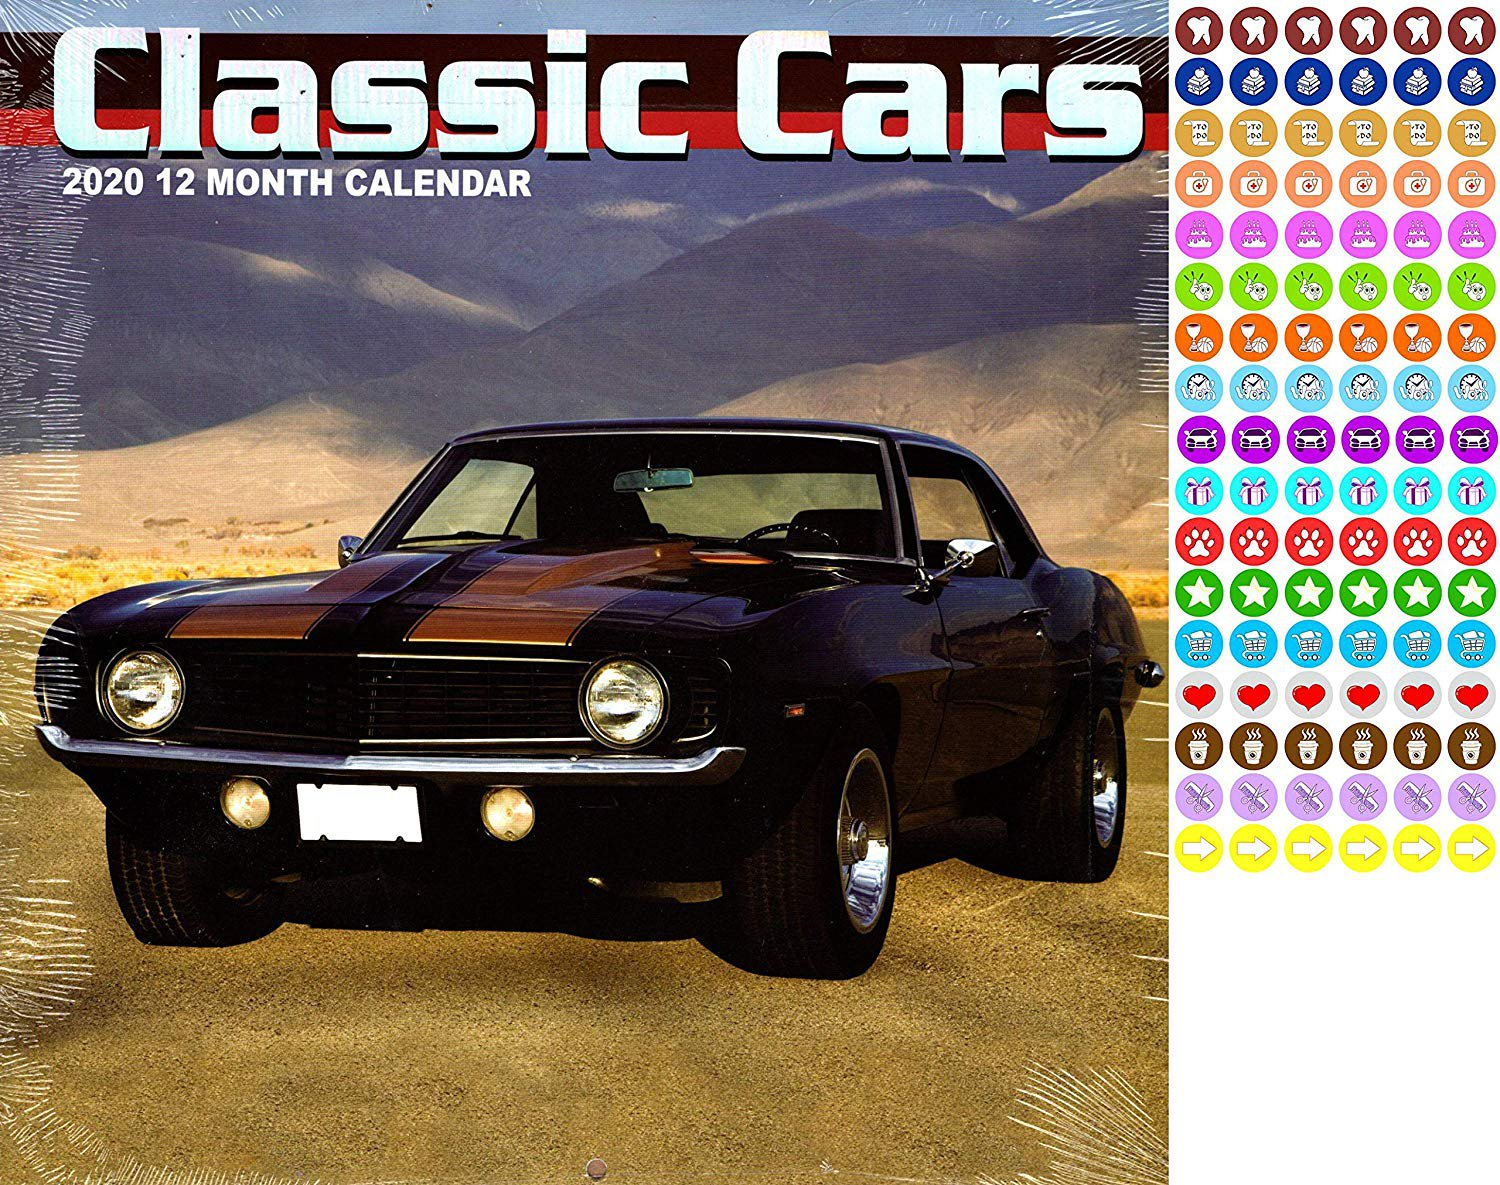 Classic Cars - 12 Month 2020 Wall Calendar - with 100 Reminder Stickers